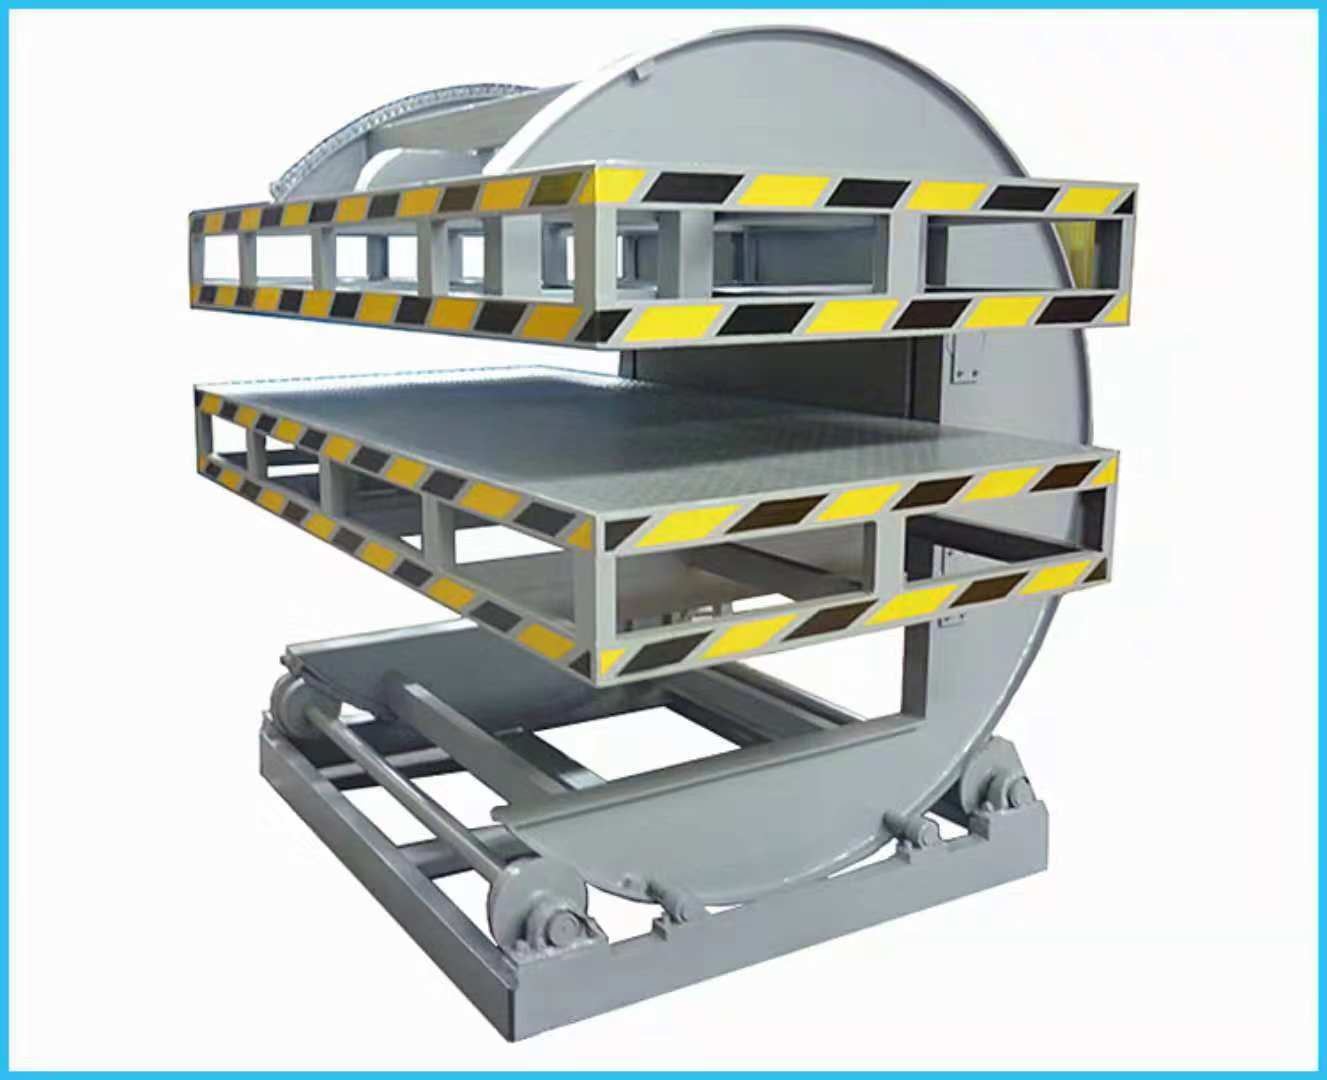 เครื่องพลิกไม้, Board turning machine, 180 degree board turning machine, 180 degree turning machine